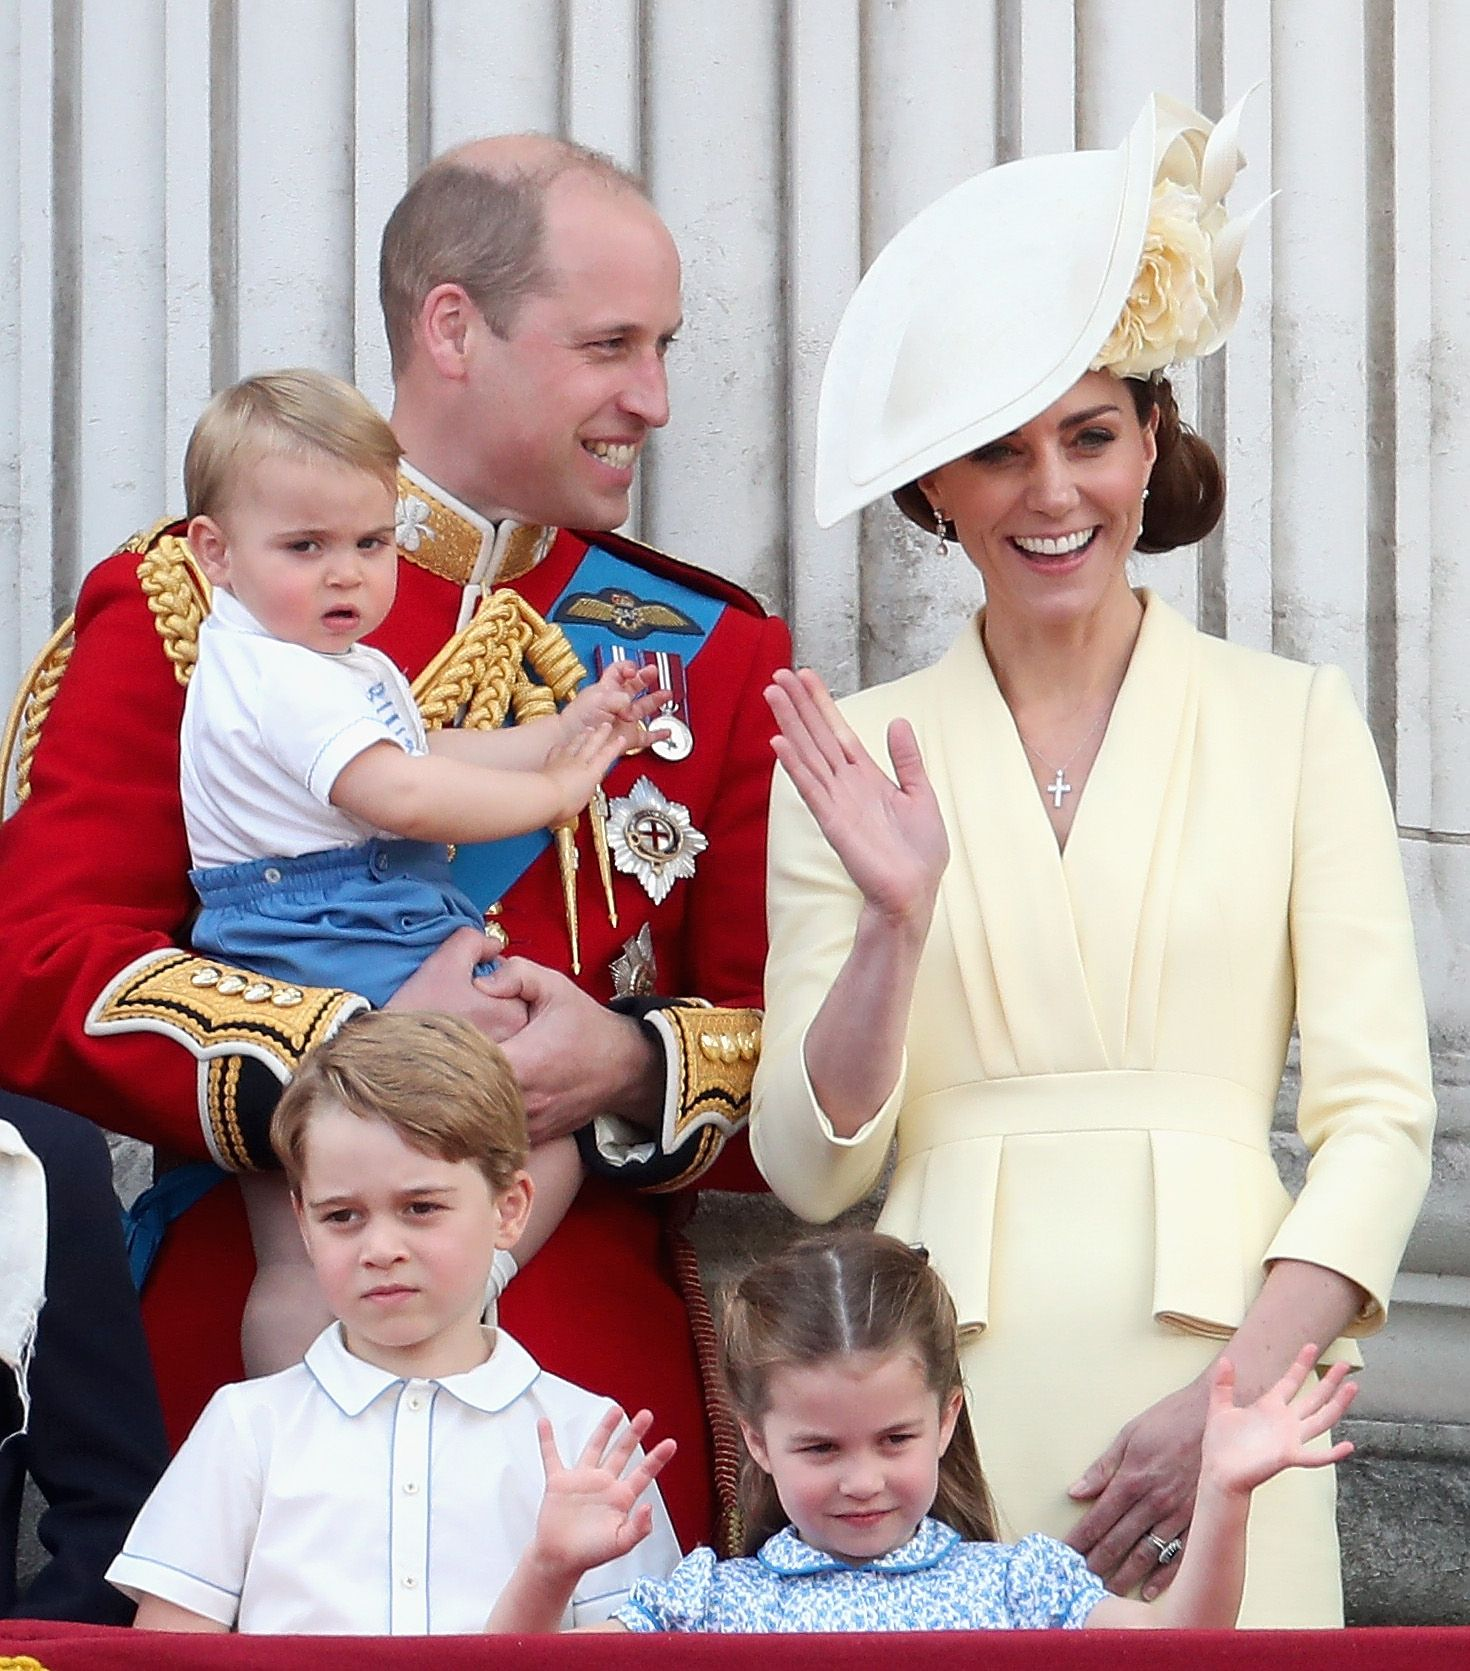 Prince William and Kate Middleton with Prince Louis, Prince George and Princess Charlotte during Trooping The Colour, on June 8, 2019 | Photo: Getty Images